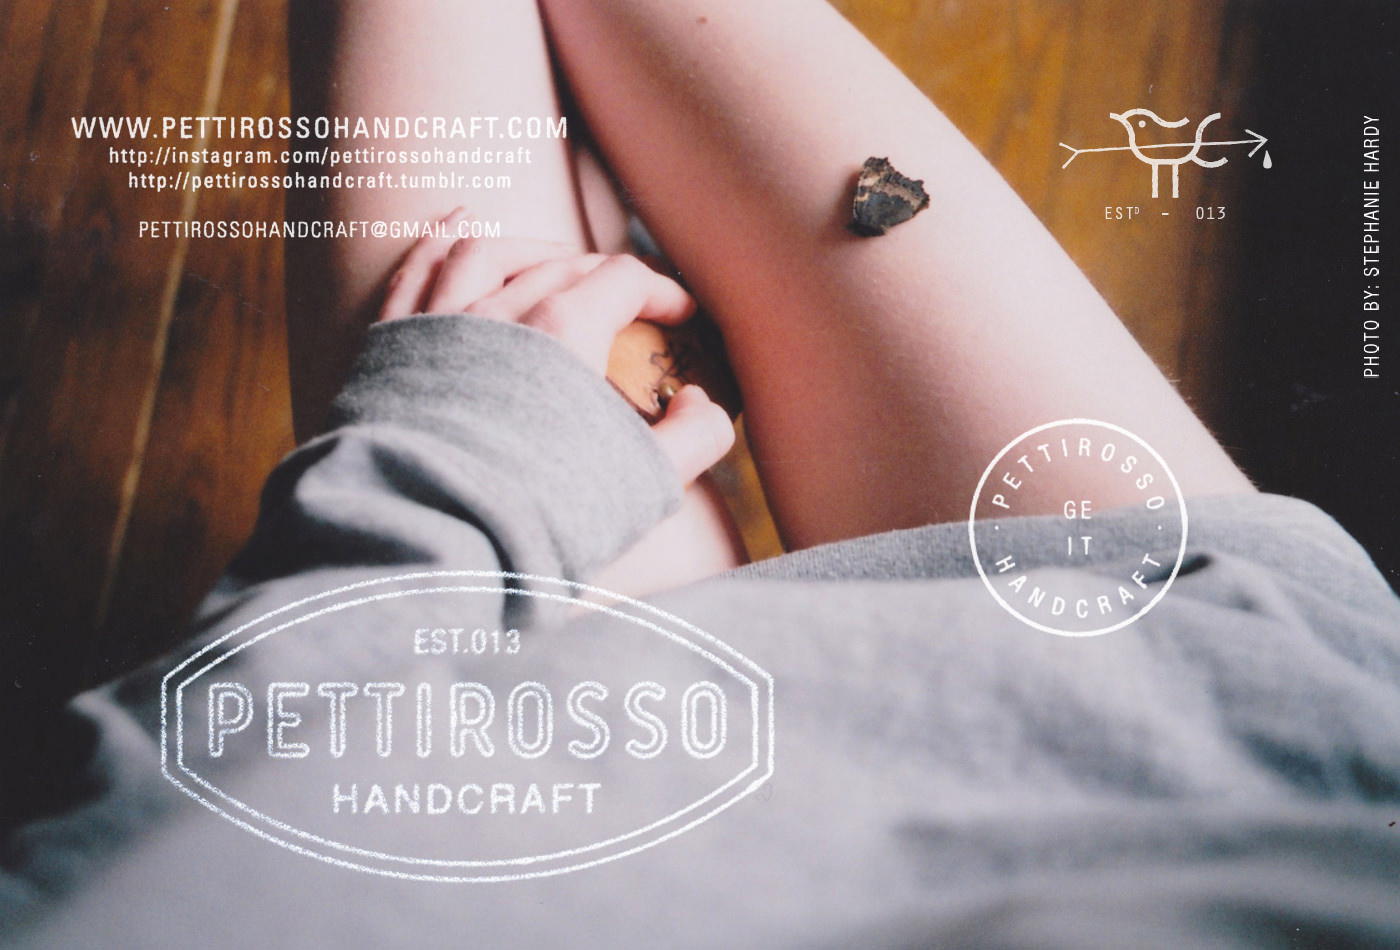 pettirosso-handcraft-leather-goods-stephany-hardy-vacaliebres